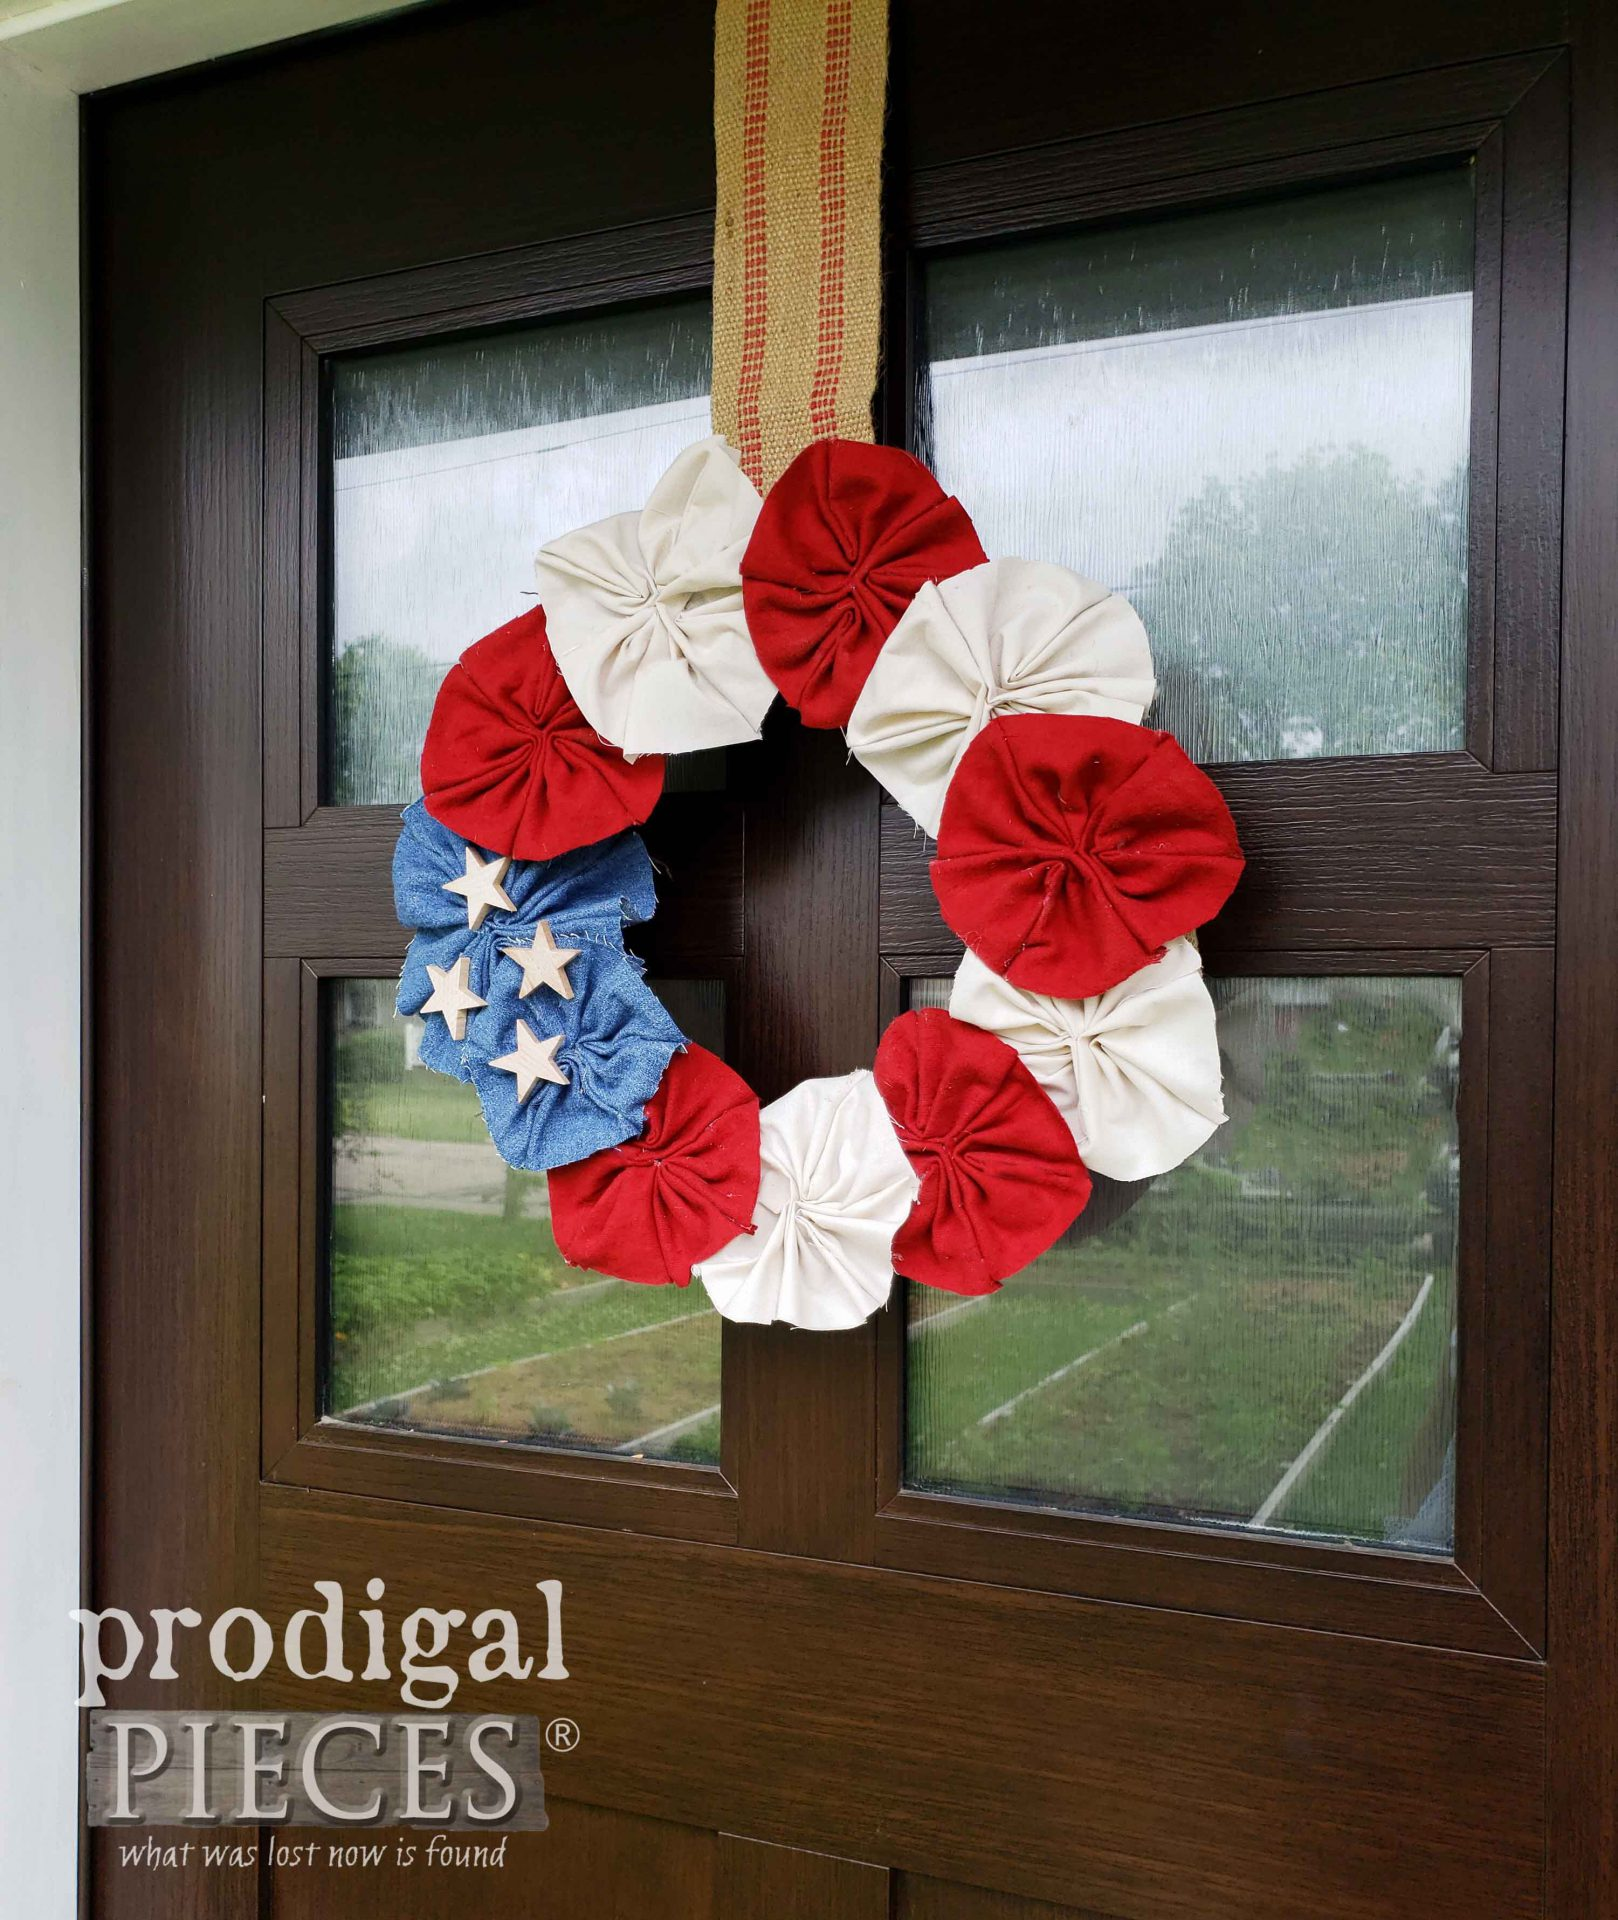 DIY Independence Day Wreath from Upcycled Fabric by Larissa of Prodigal Pieces | prodigalpieces.com #prodigalpieces #independenceday #diy #4thofjuly #home #homedecor